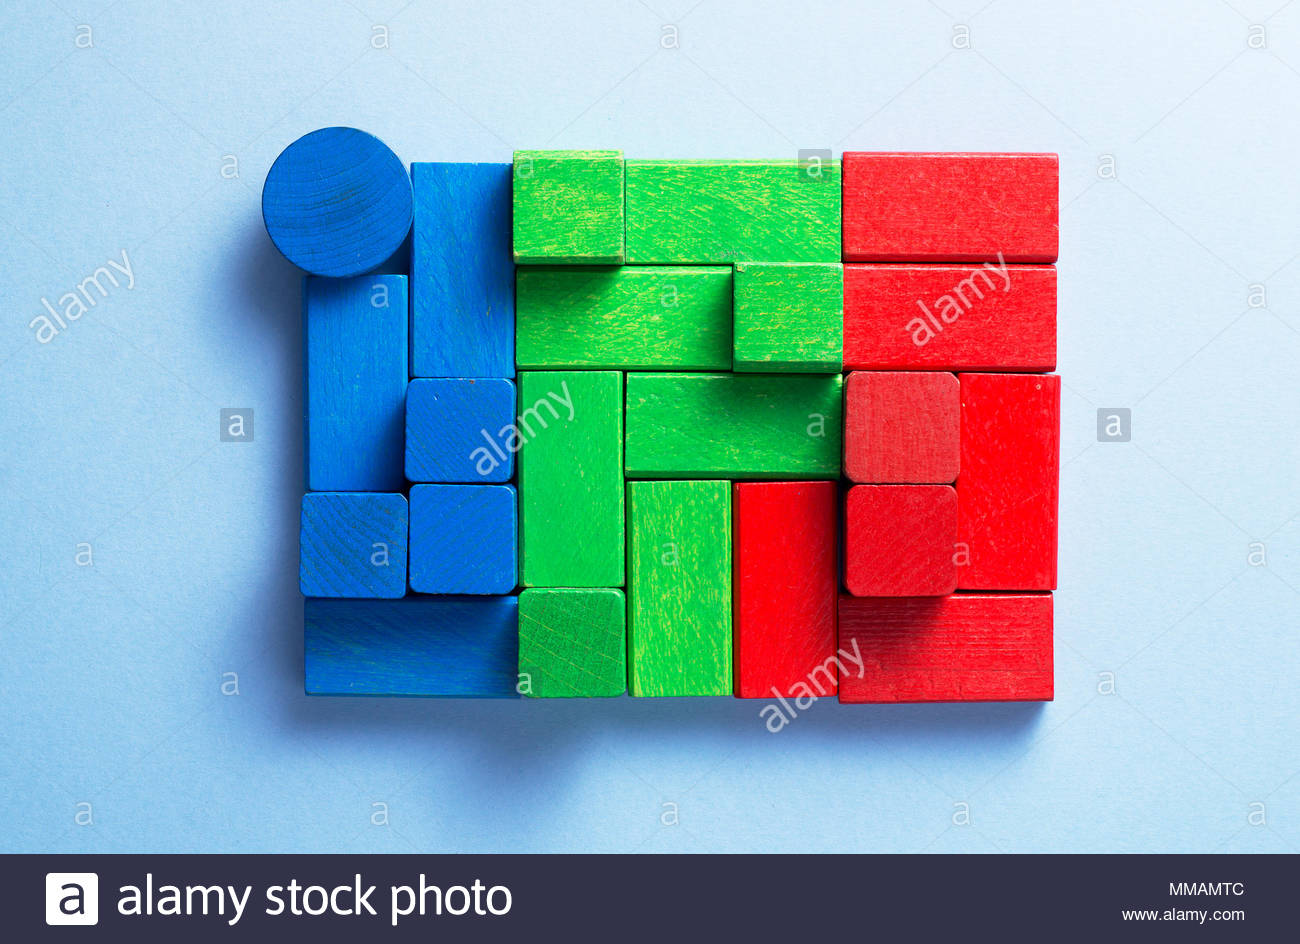 Colorful wooden cubes organized over blue background top view 1300x944